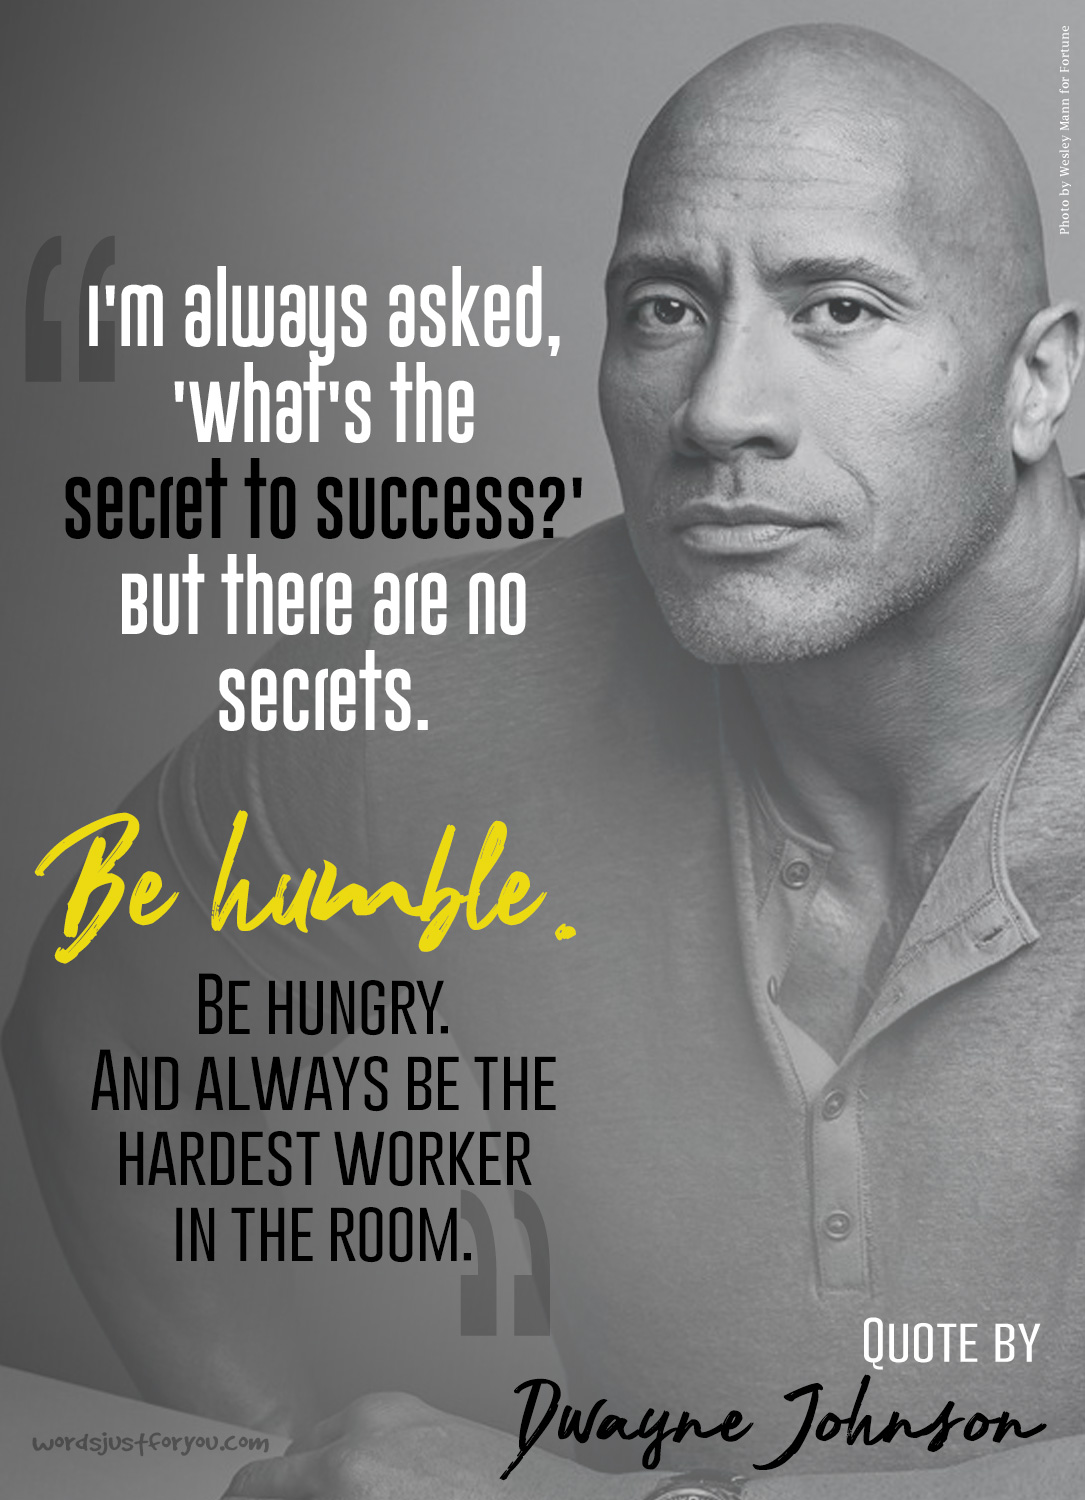 Easter Quotes And Sayings Wallpapers Quote On Success By Dwayne Johnson Words Just For You